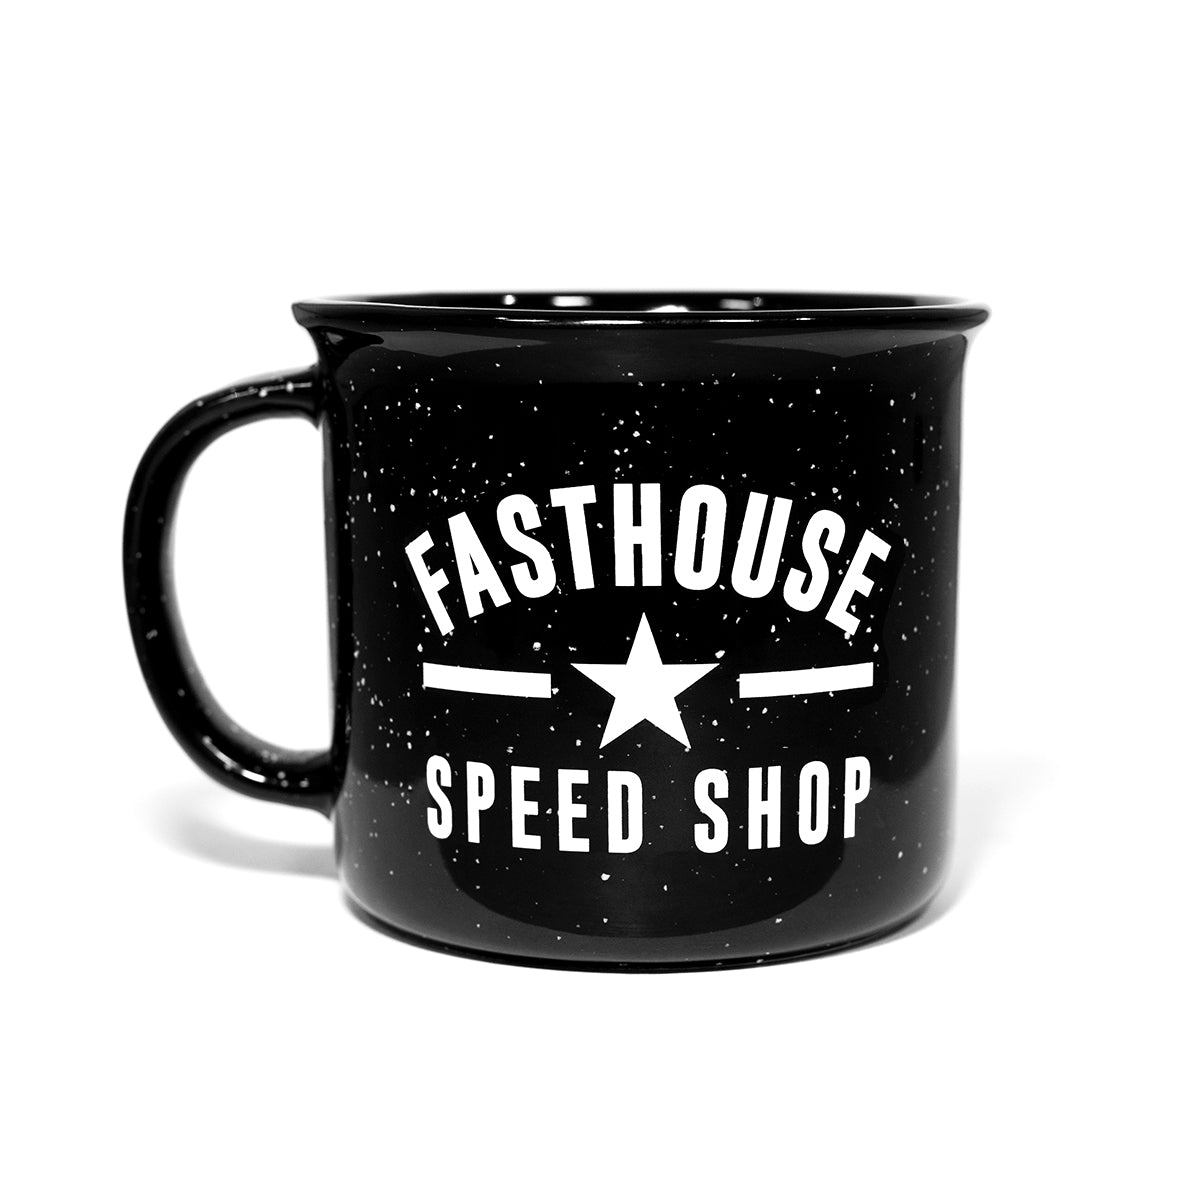 Speed Shop Mug - Black